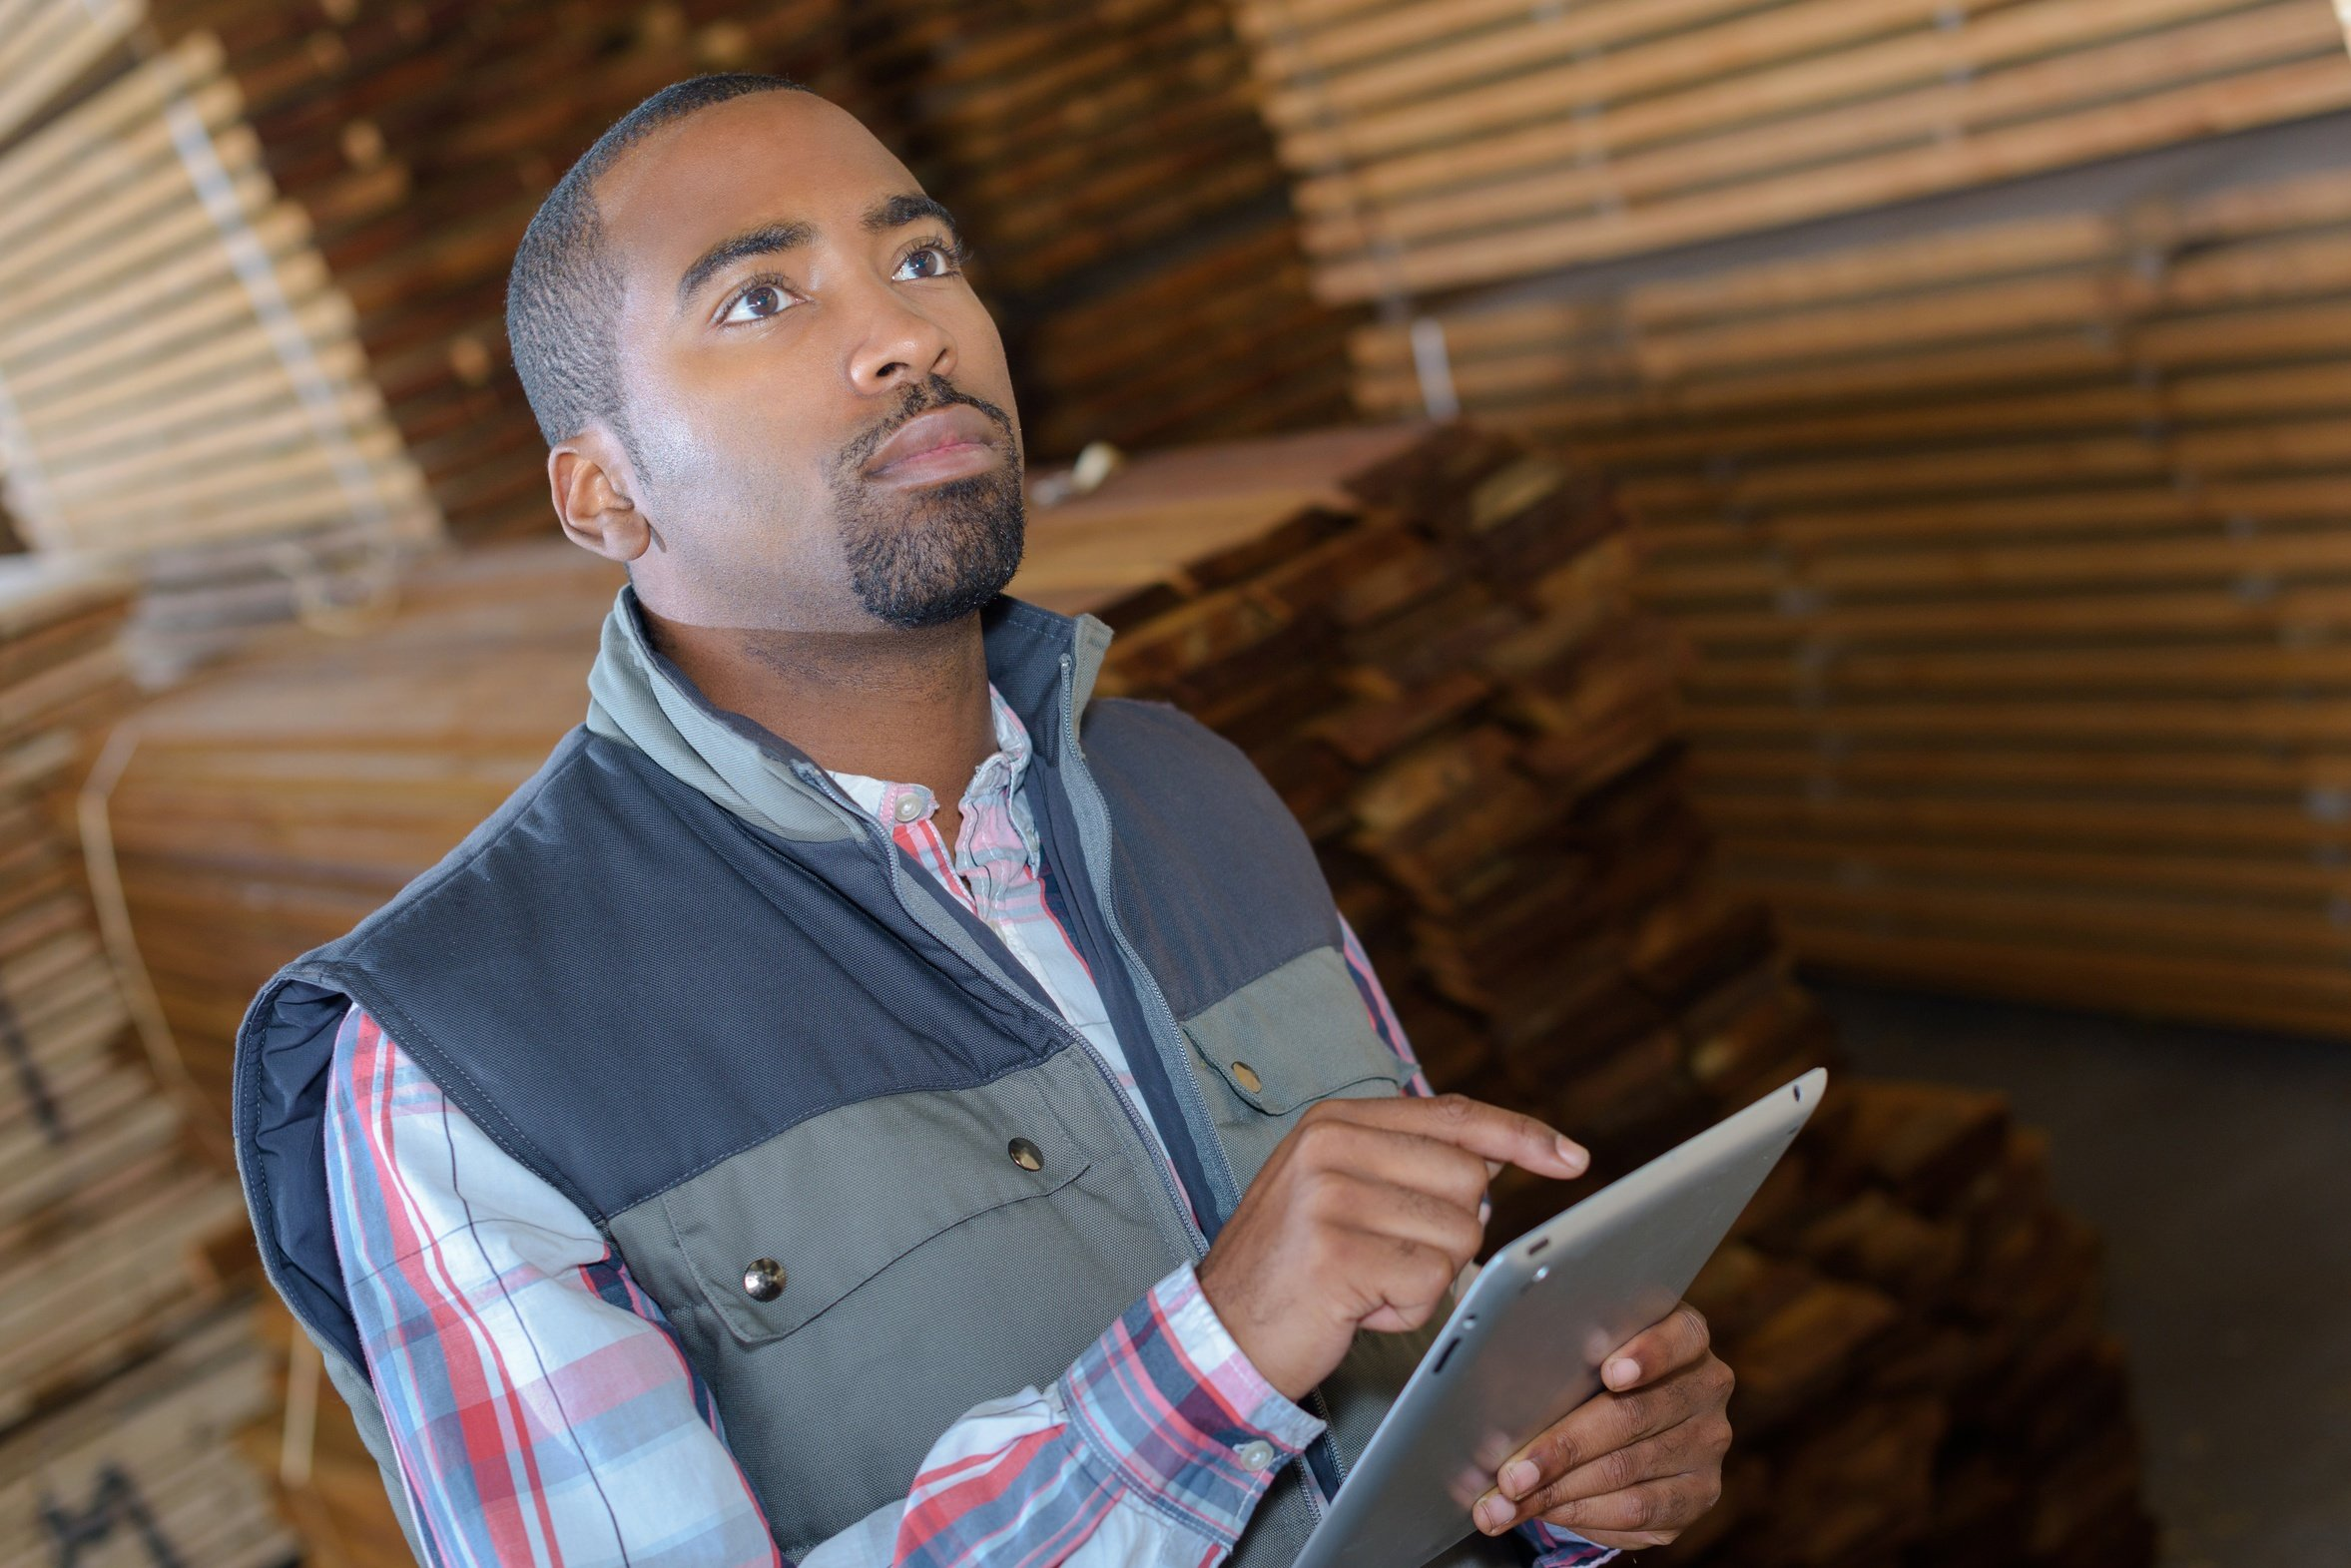 Online Ordering For Lumber and Building Materials